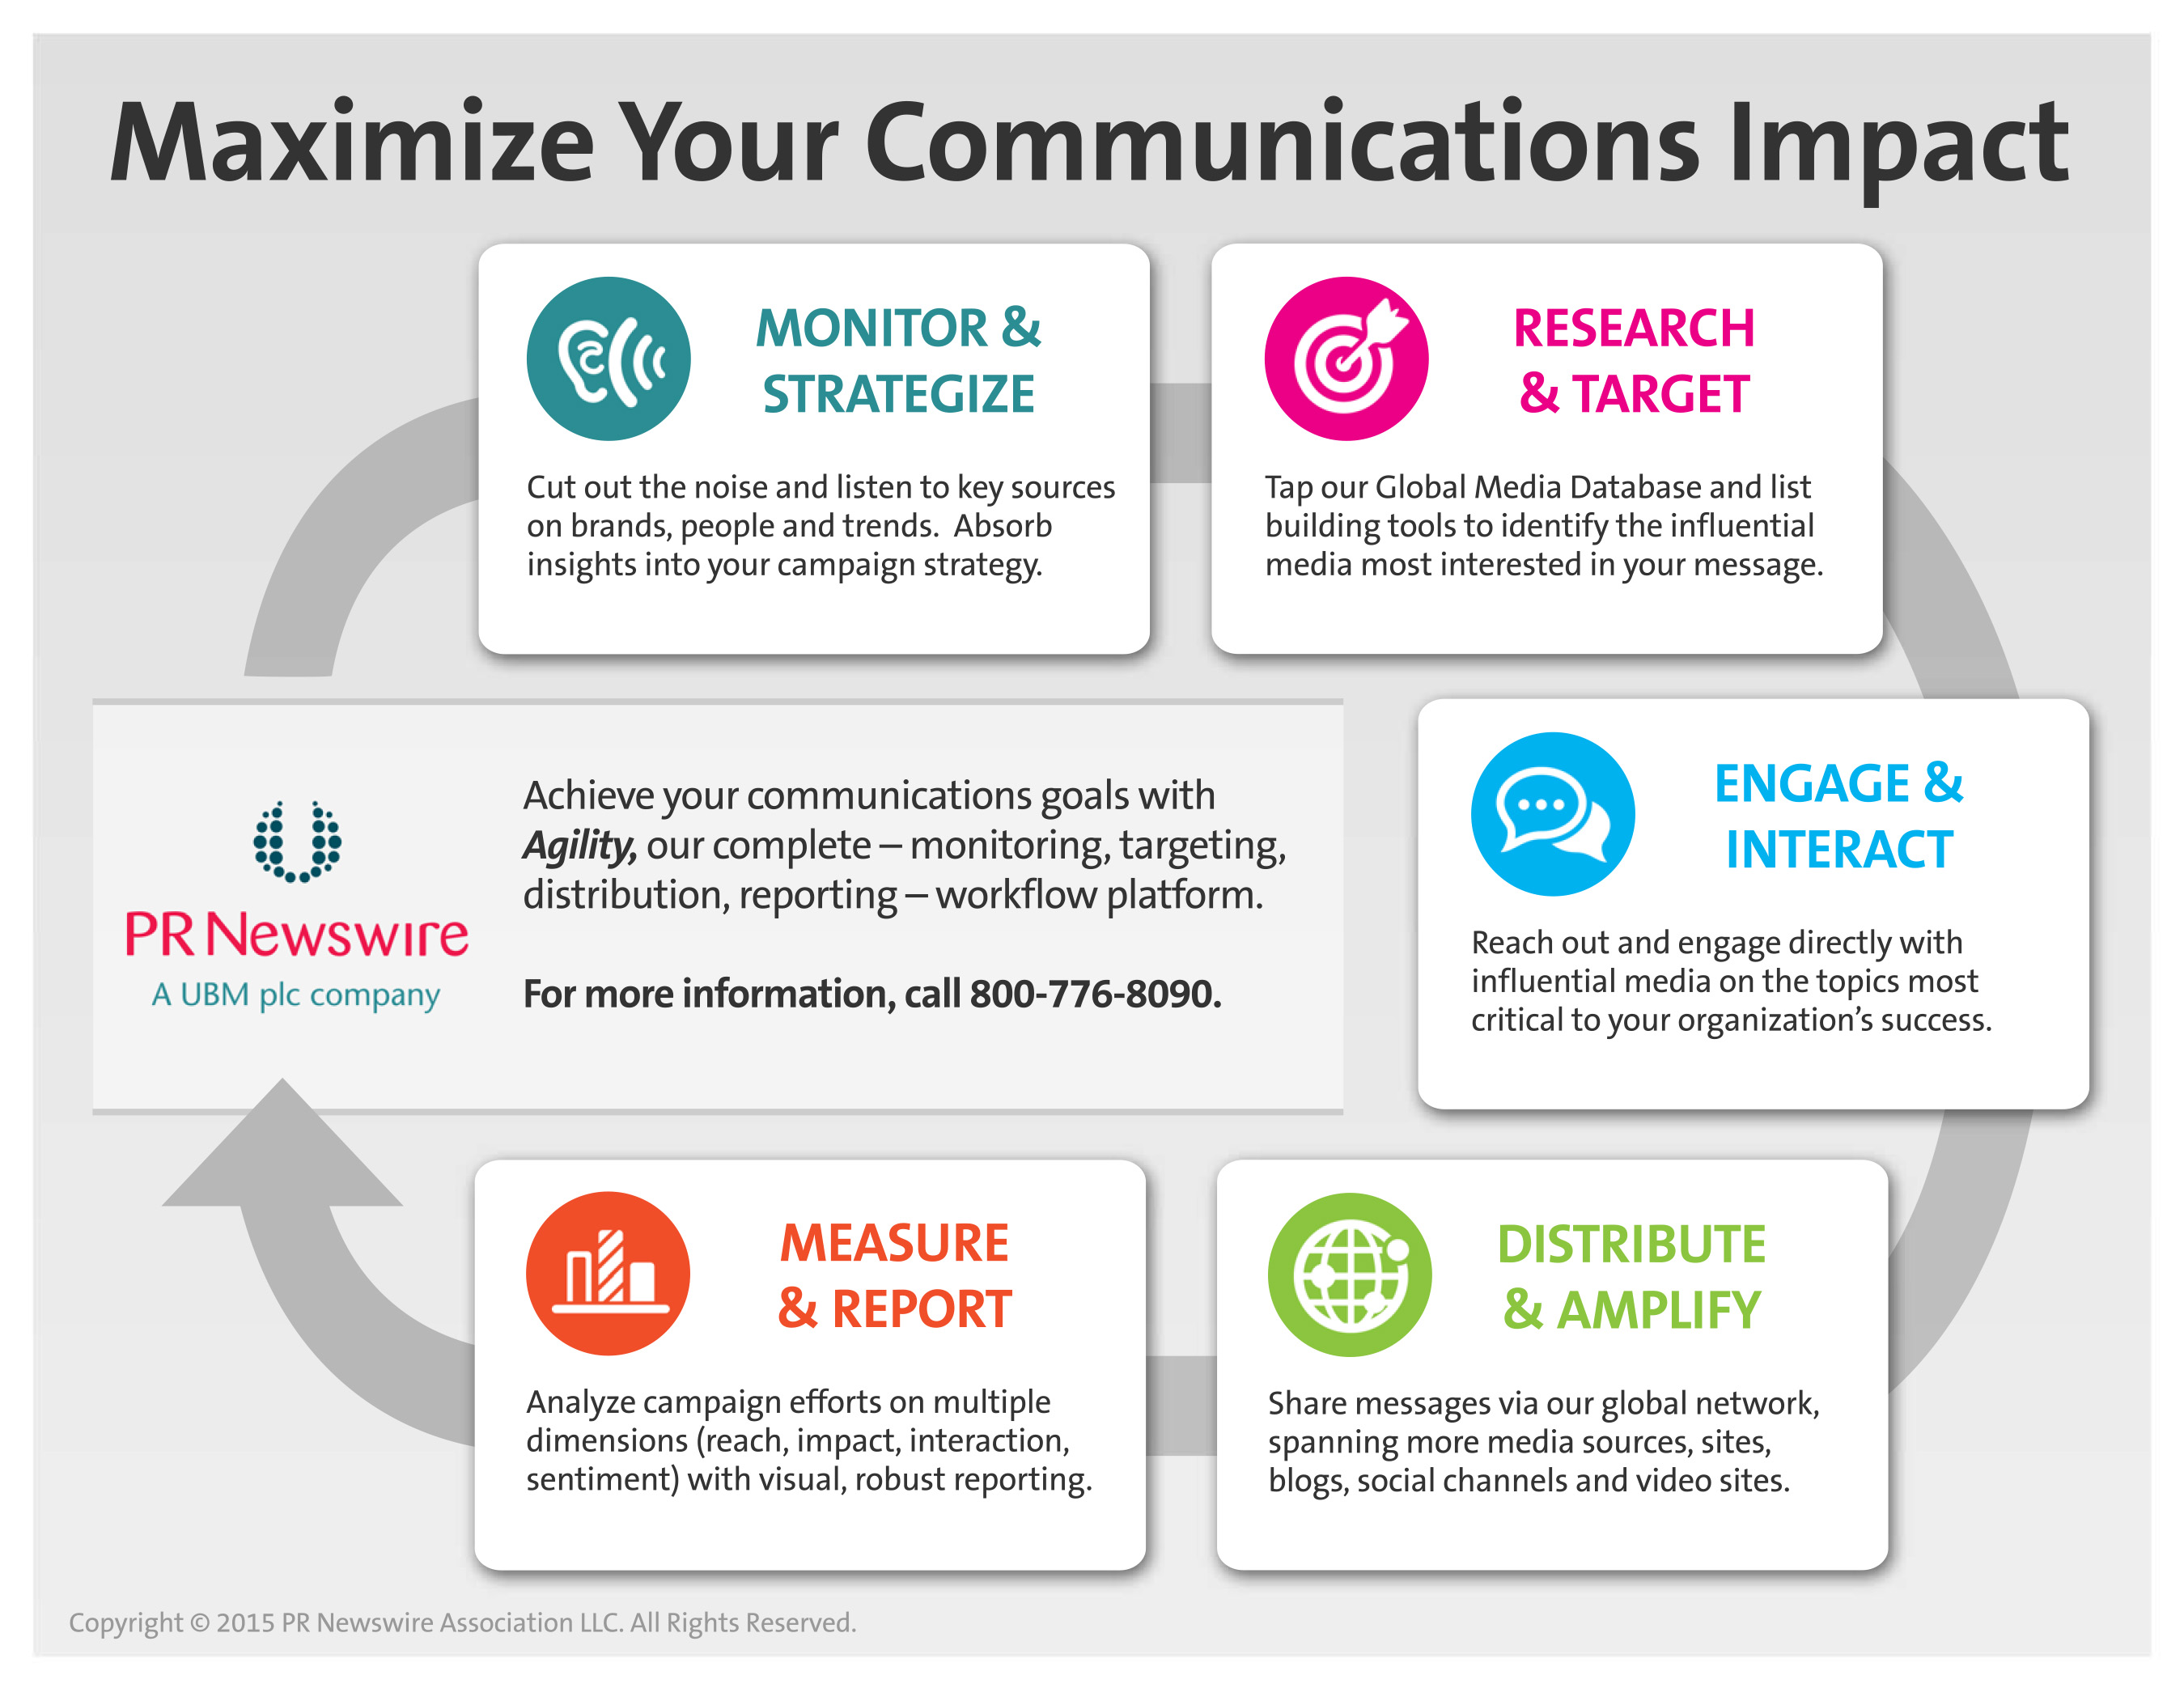 Maximize your communications impact and take control of your brand's message with Agility's suite of targeting and monitoring tools.